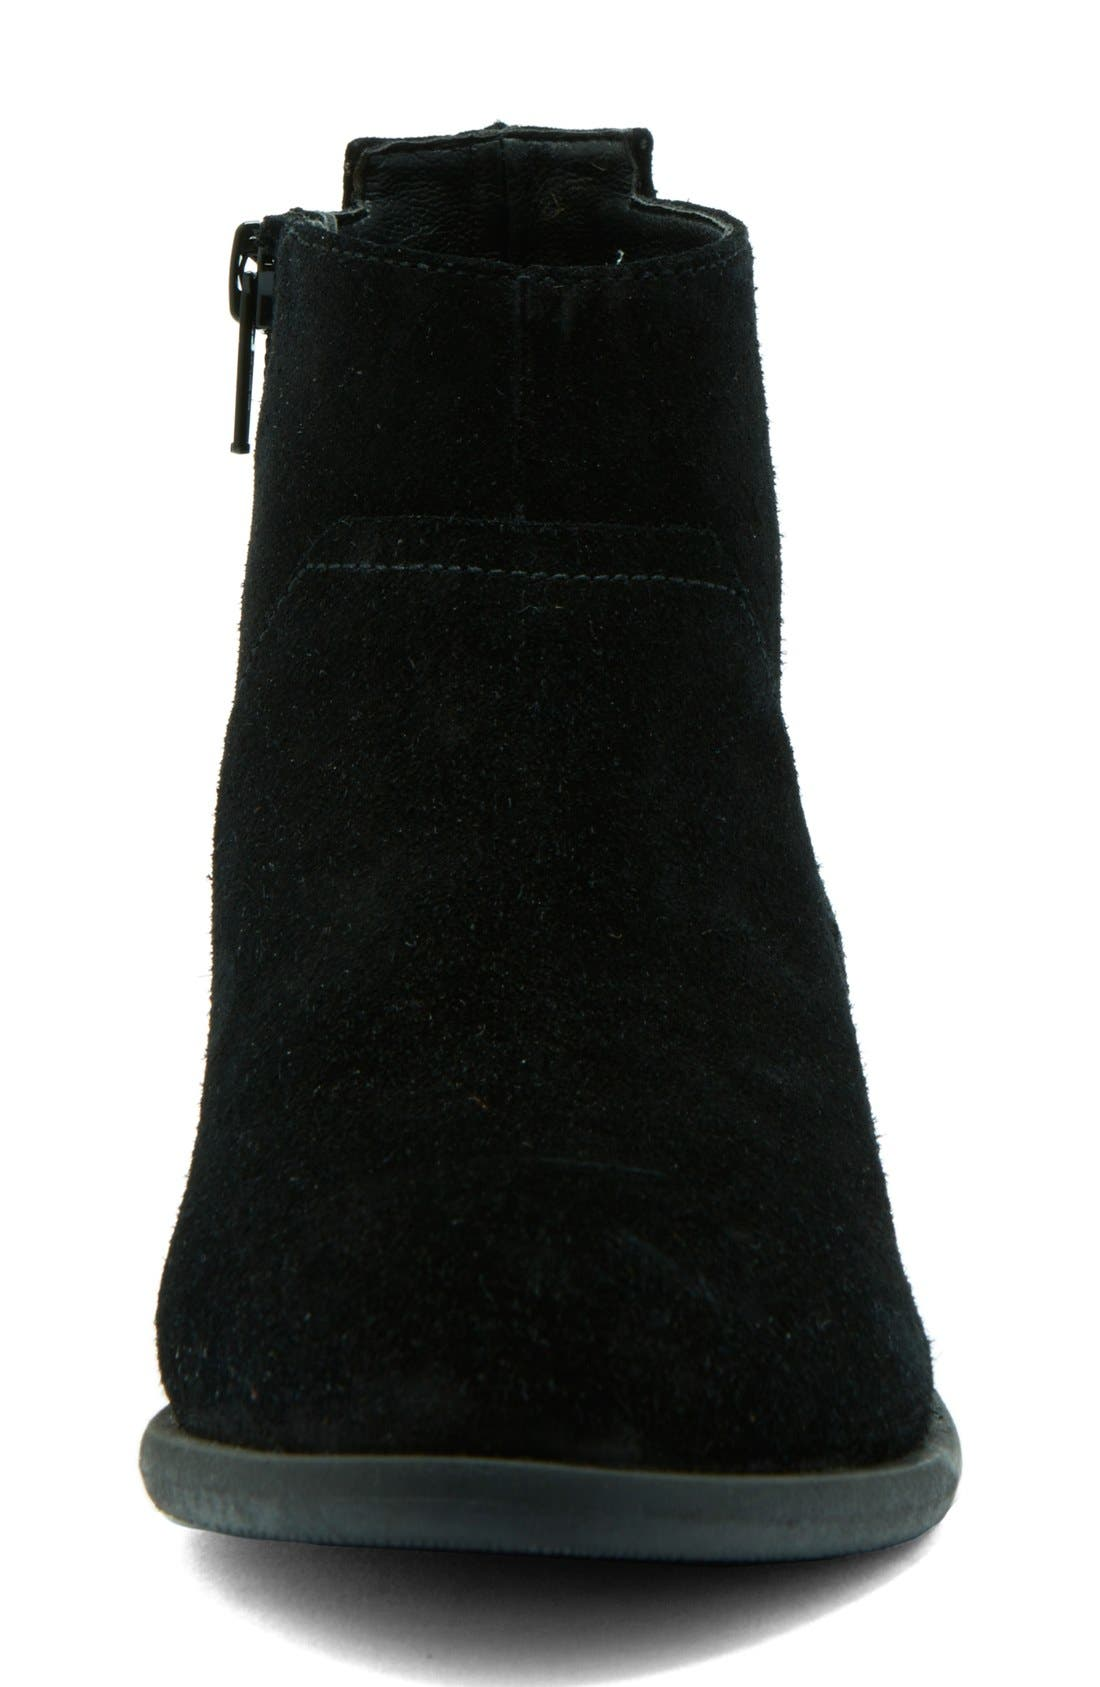 'Maddie' Waterproof Ankle Boot,                             Alternate thumbnail 2, color,                             006